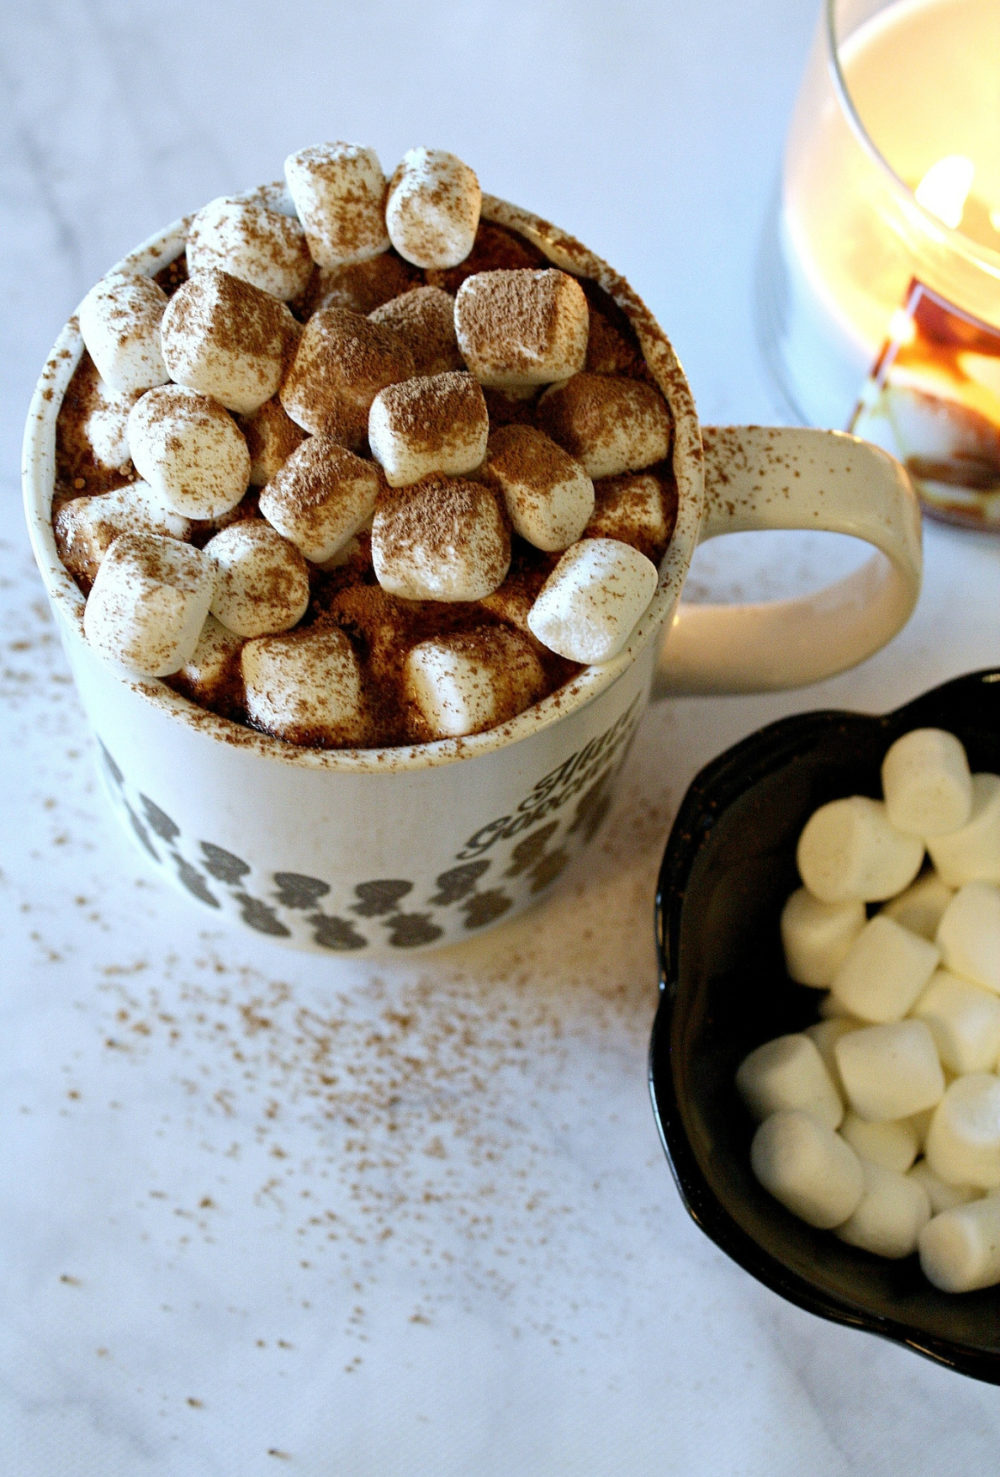 Mug with hot chocolate, marshmallows, and candle on white surface